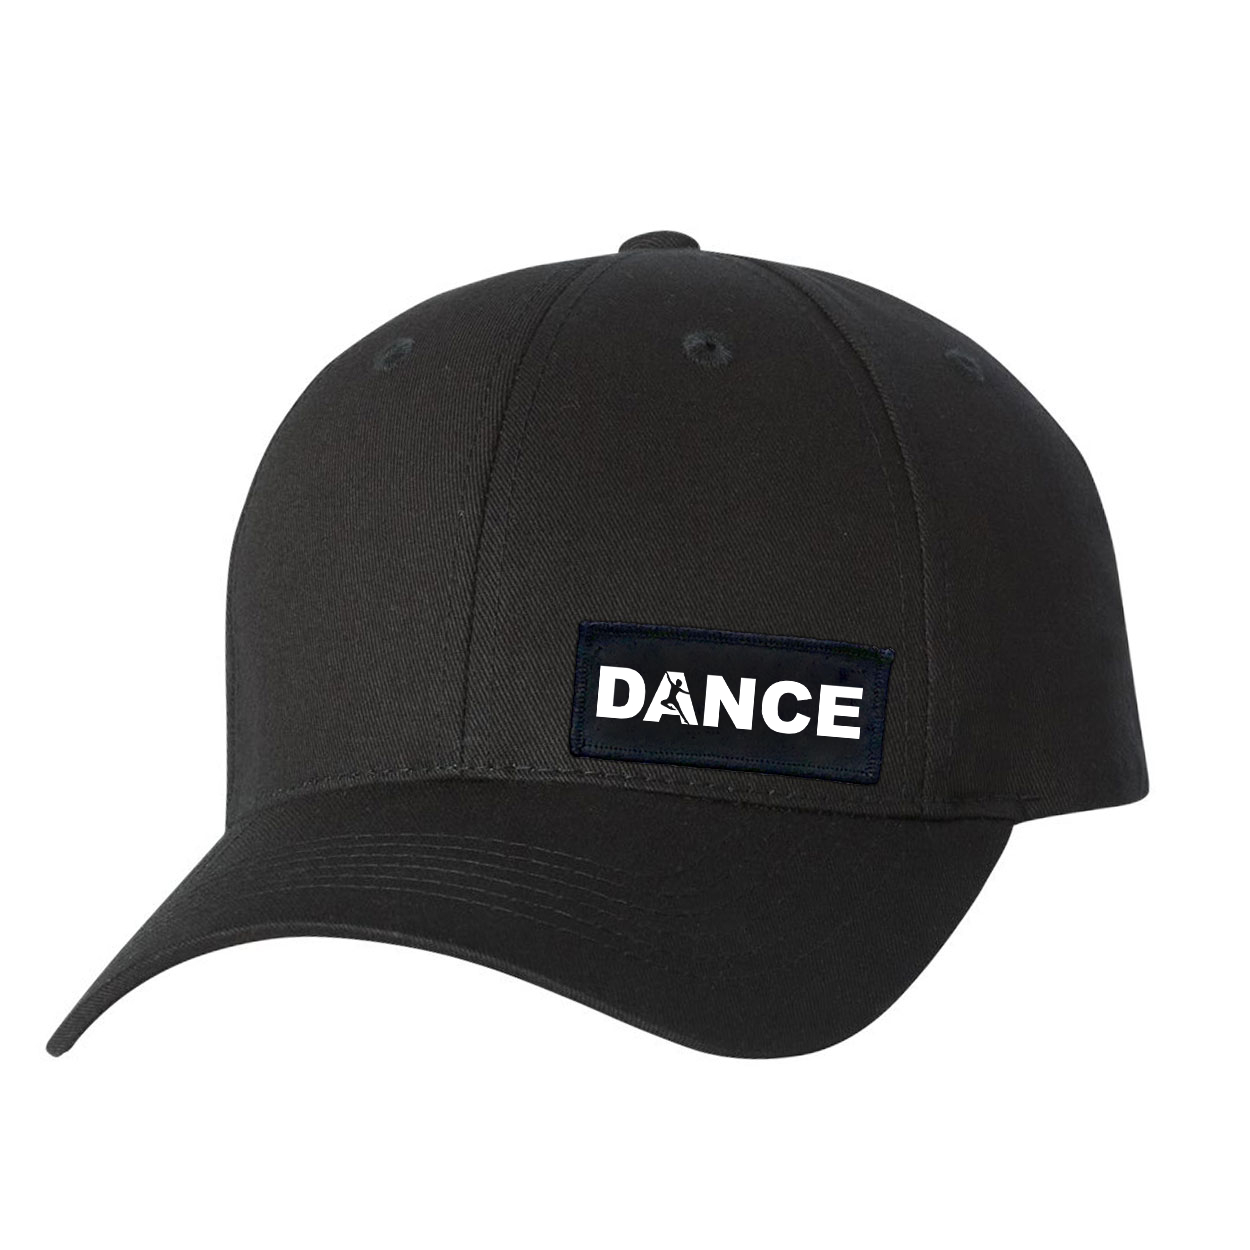 Dance Silhouette Logo Night Out Youth Woven Patch Hat Black (White Logo)